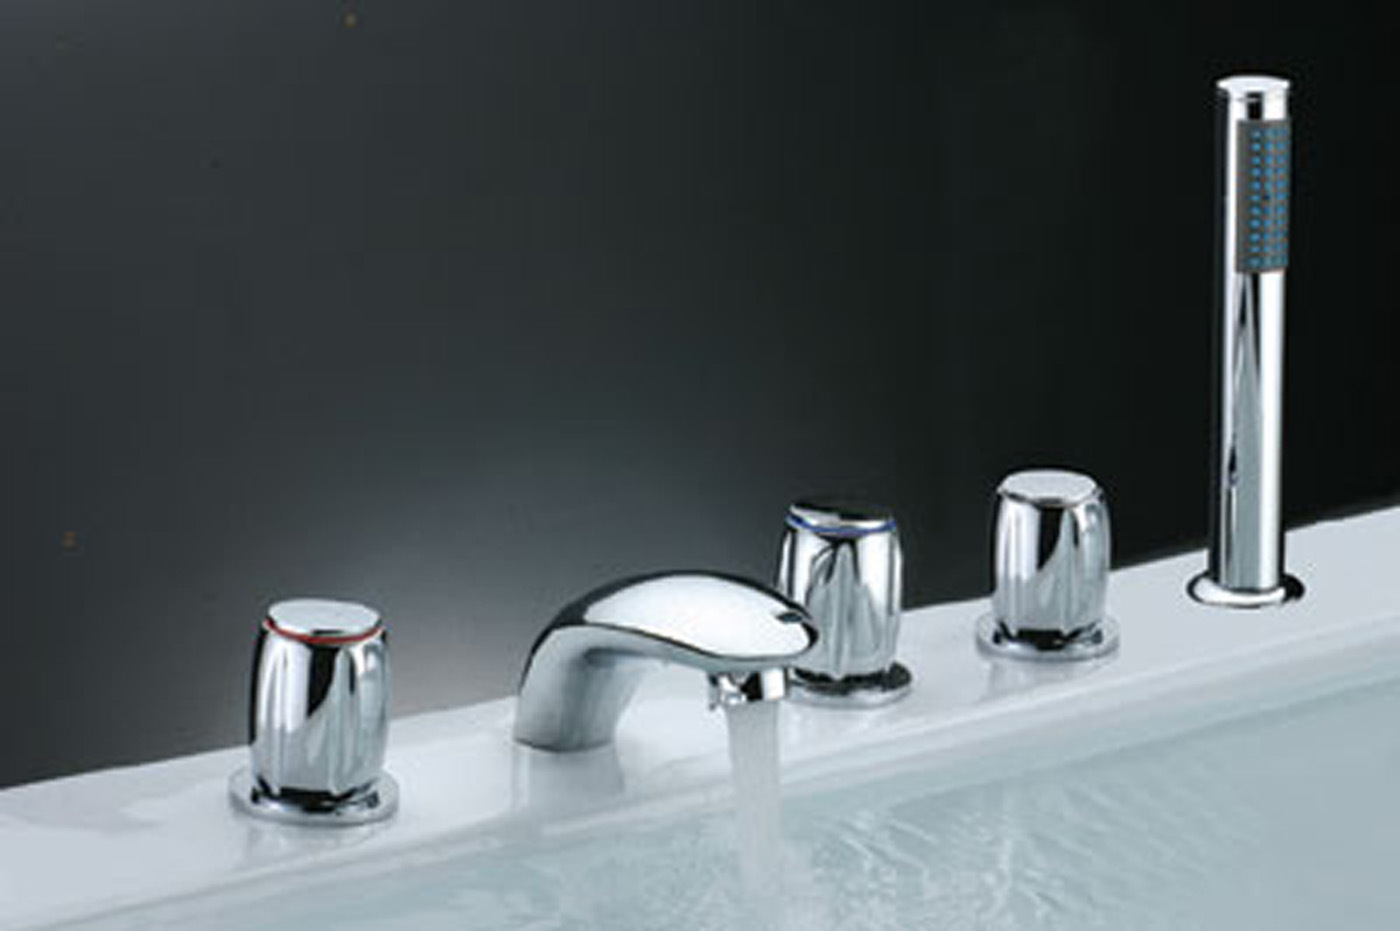 Bathtub Spigot China Waterfall Bathtub Faucet Y 8016 China Faucet Mixer